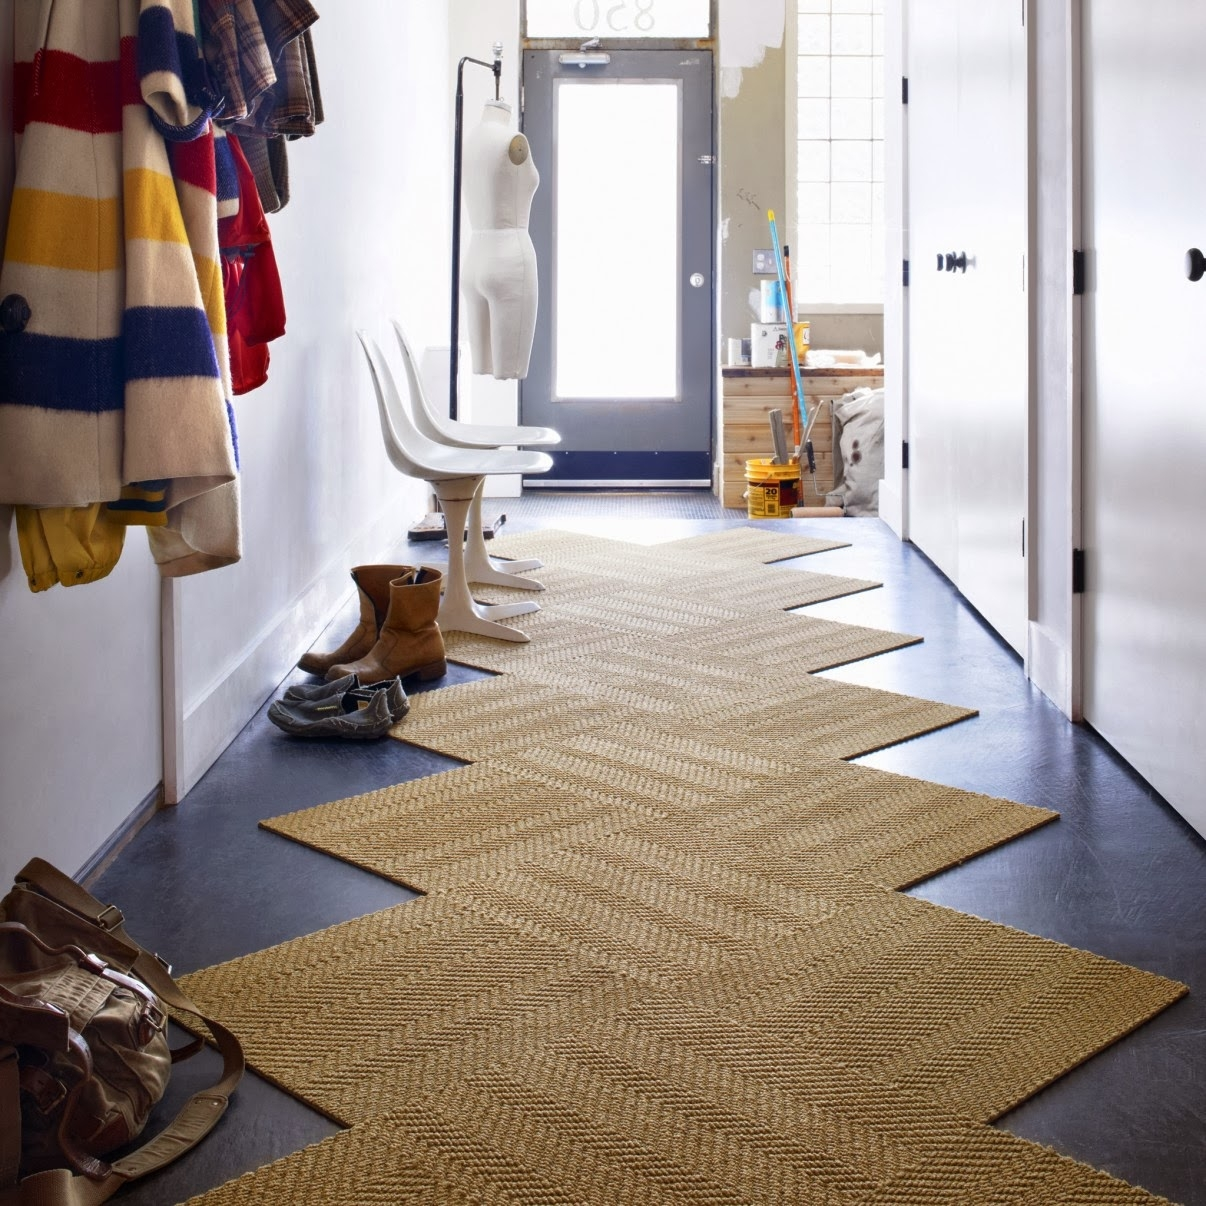 12 Foot Runner Rug Rugs Ideas With Hallway Runners 12 Feet (#3 of 20)